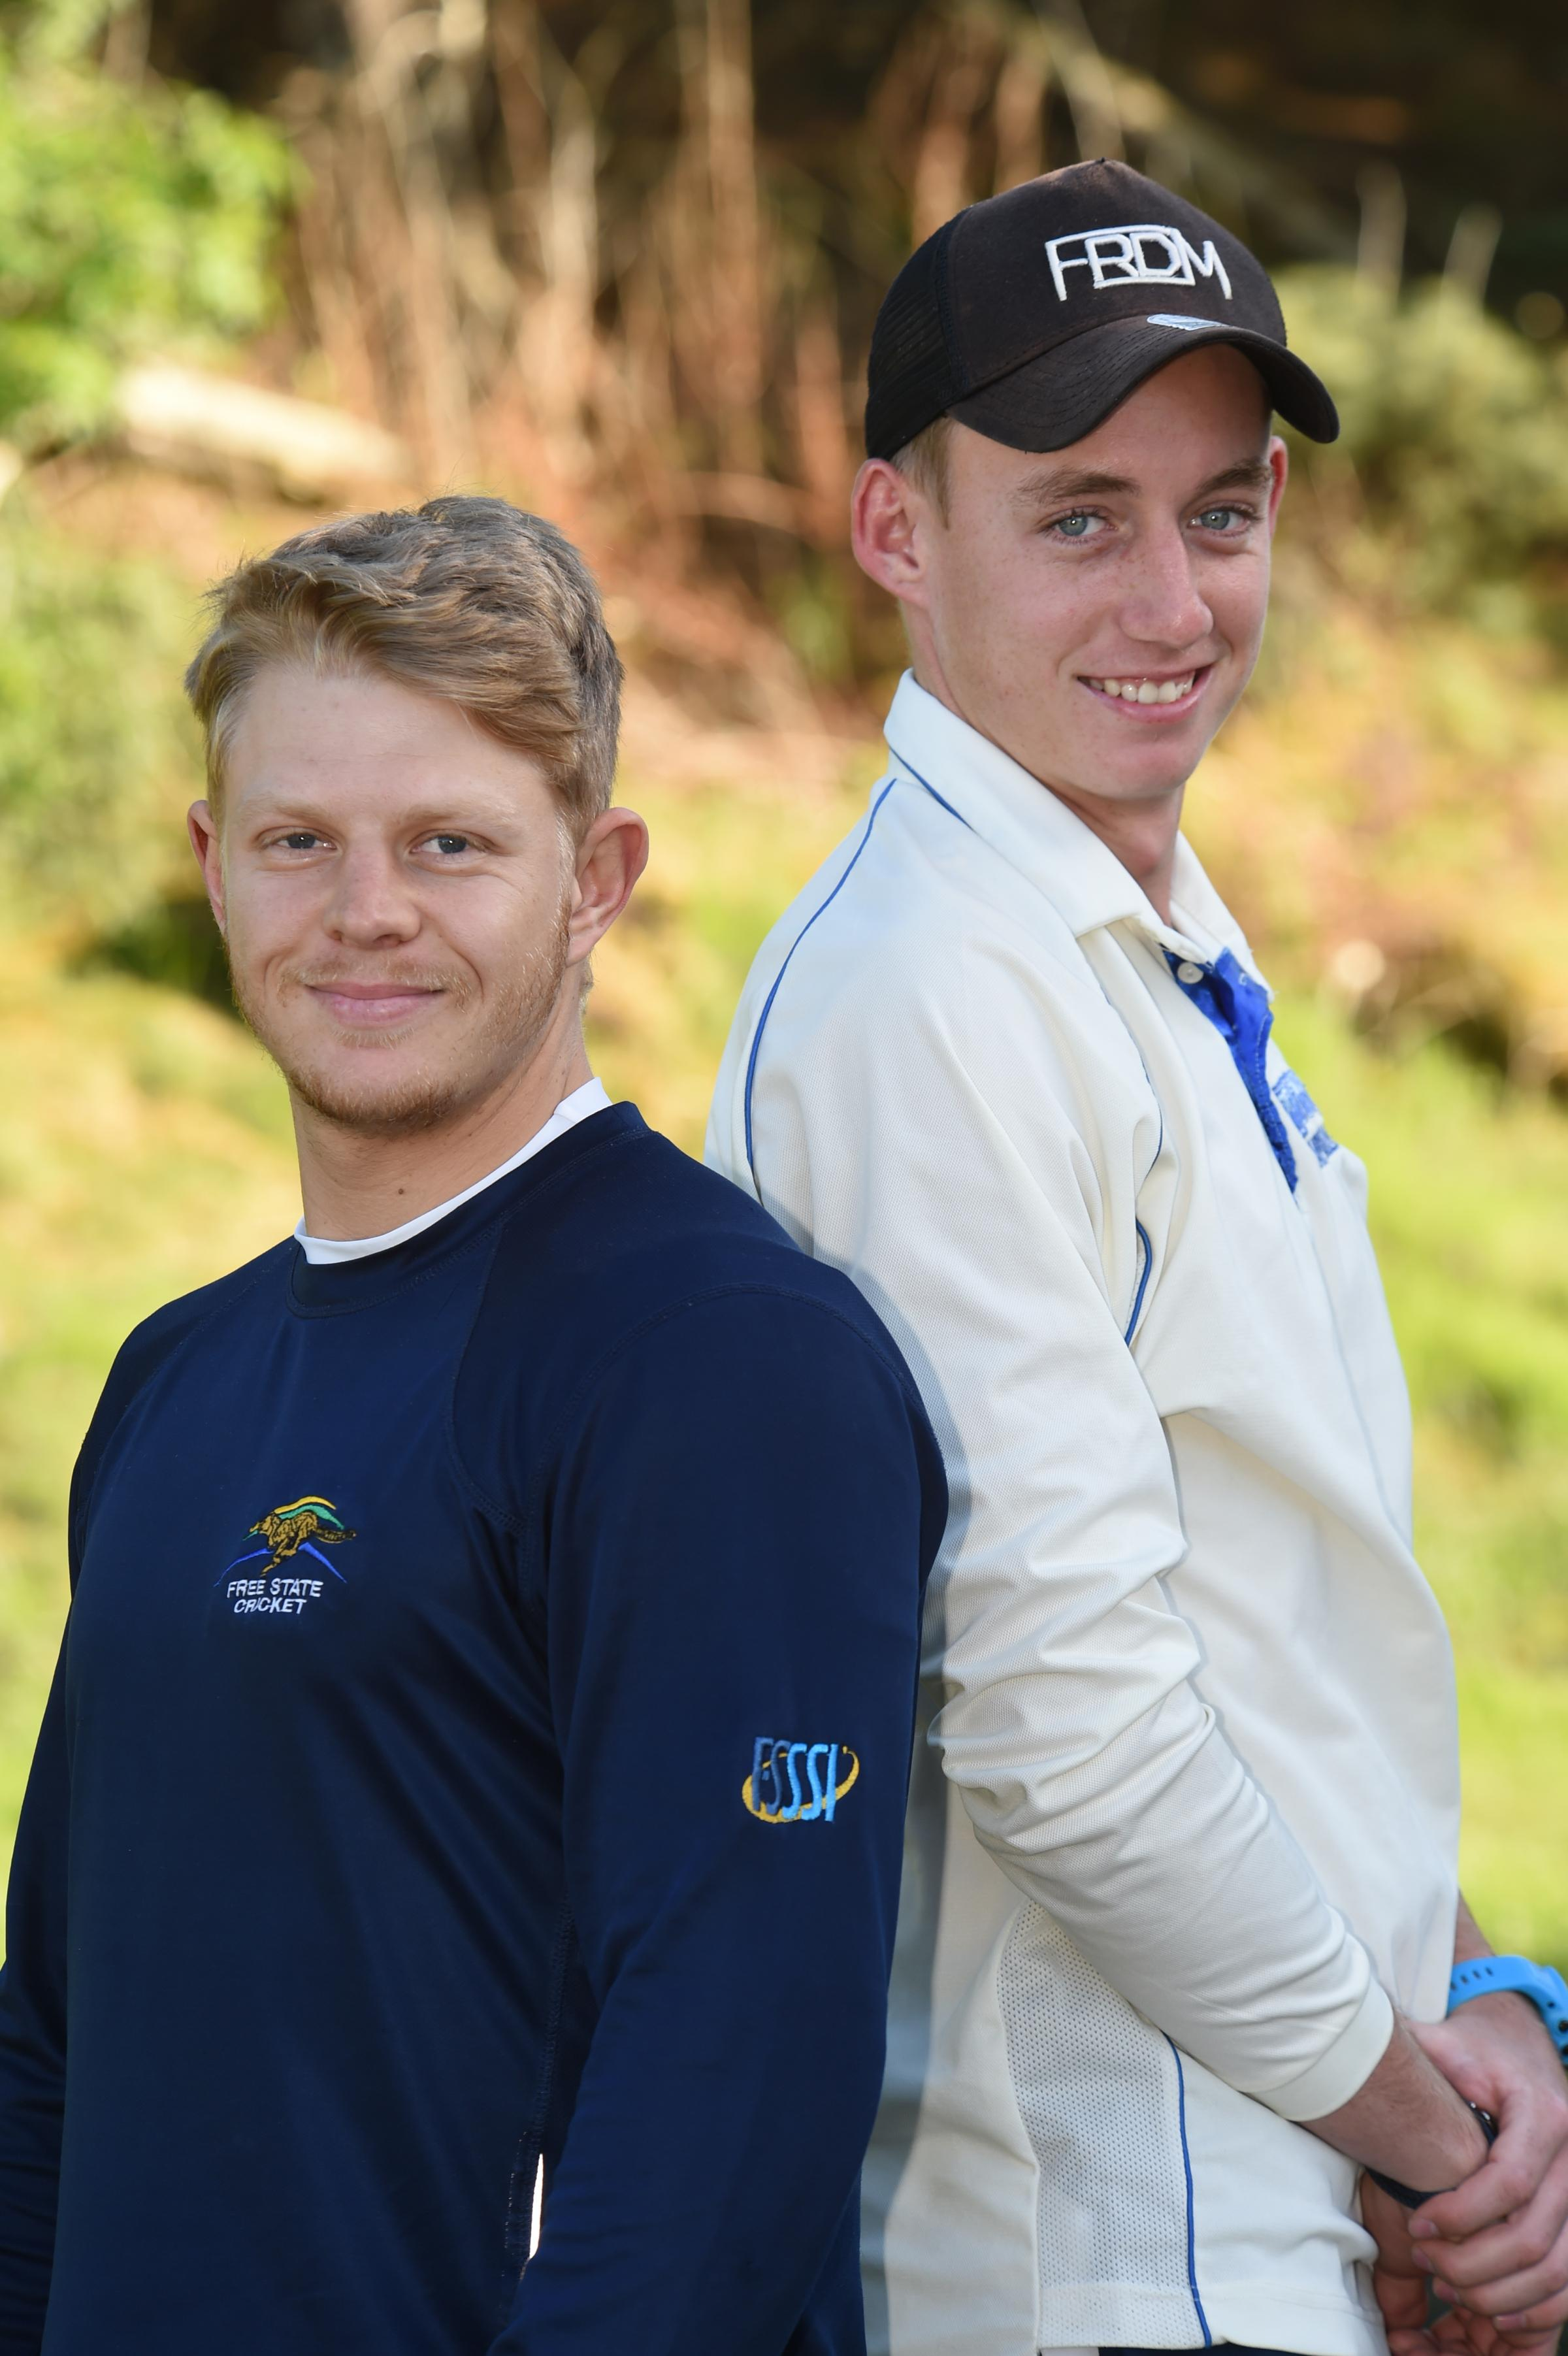 Irvine Cricket duo Koot Pienaar (left) and Bevan Carsle.